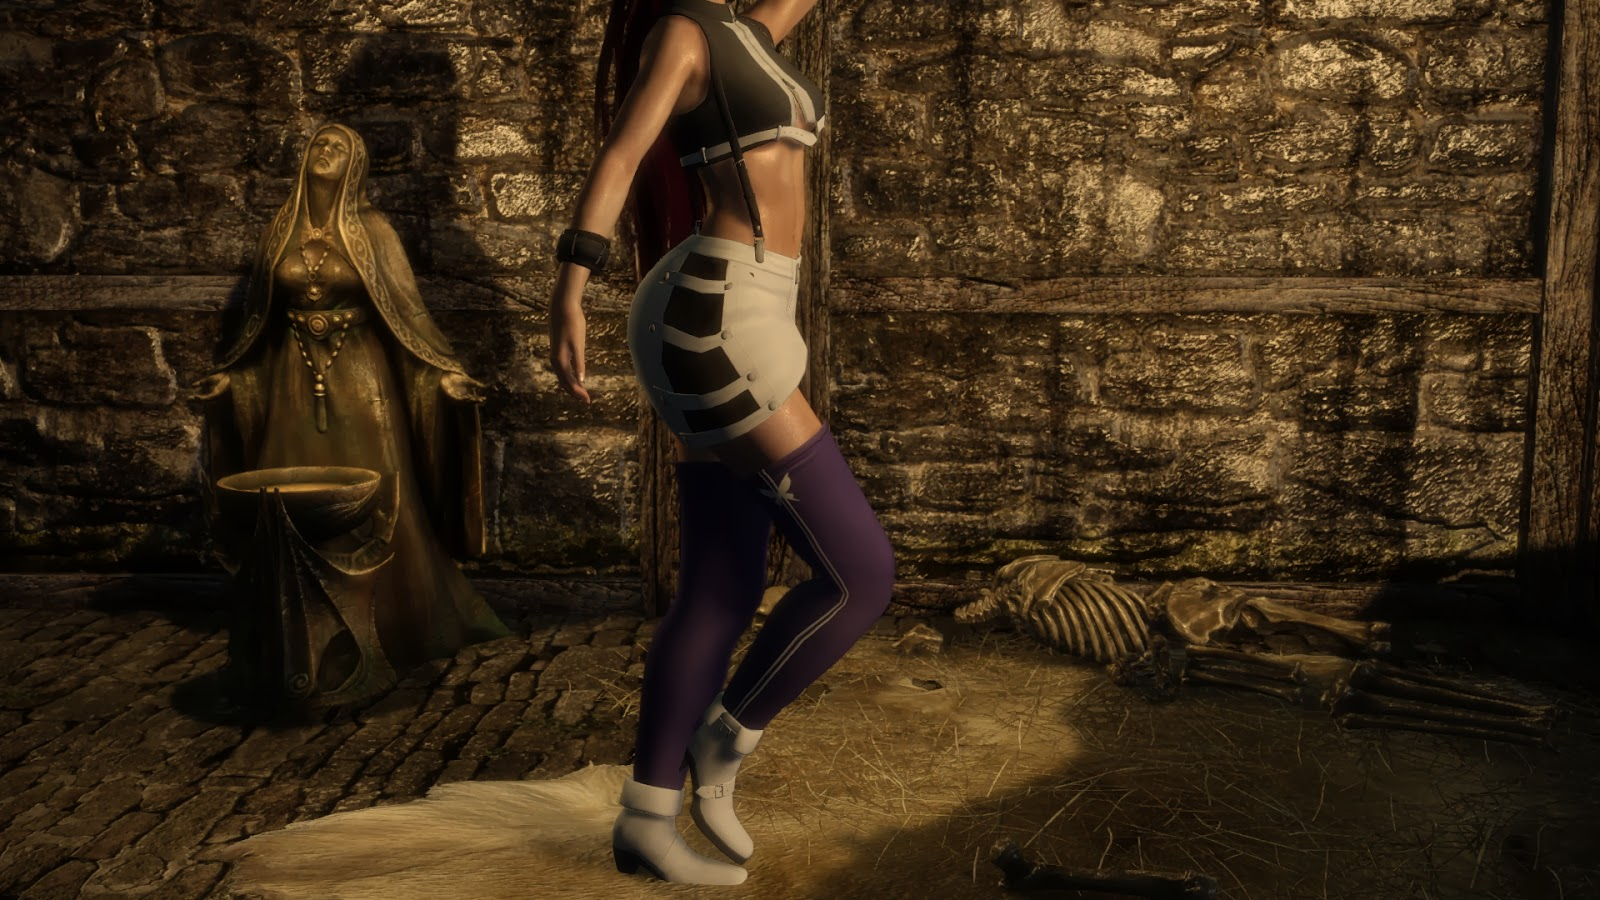 Ayane Intimate Outfit Skyrim